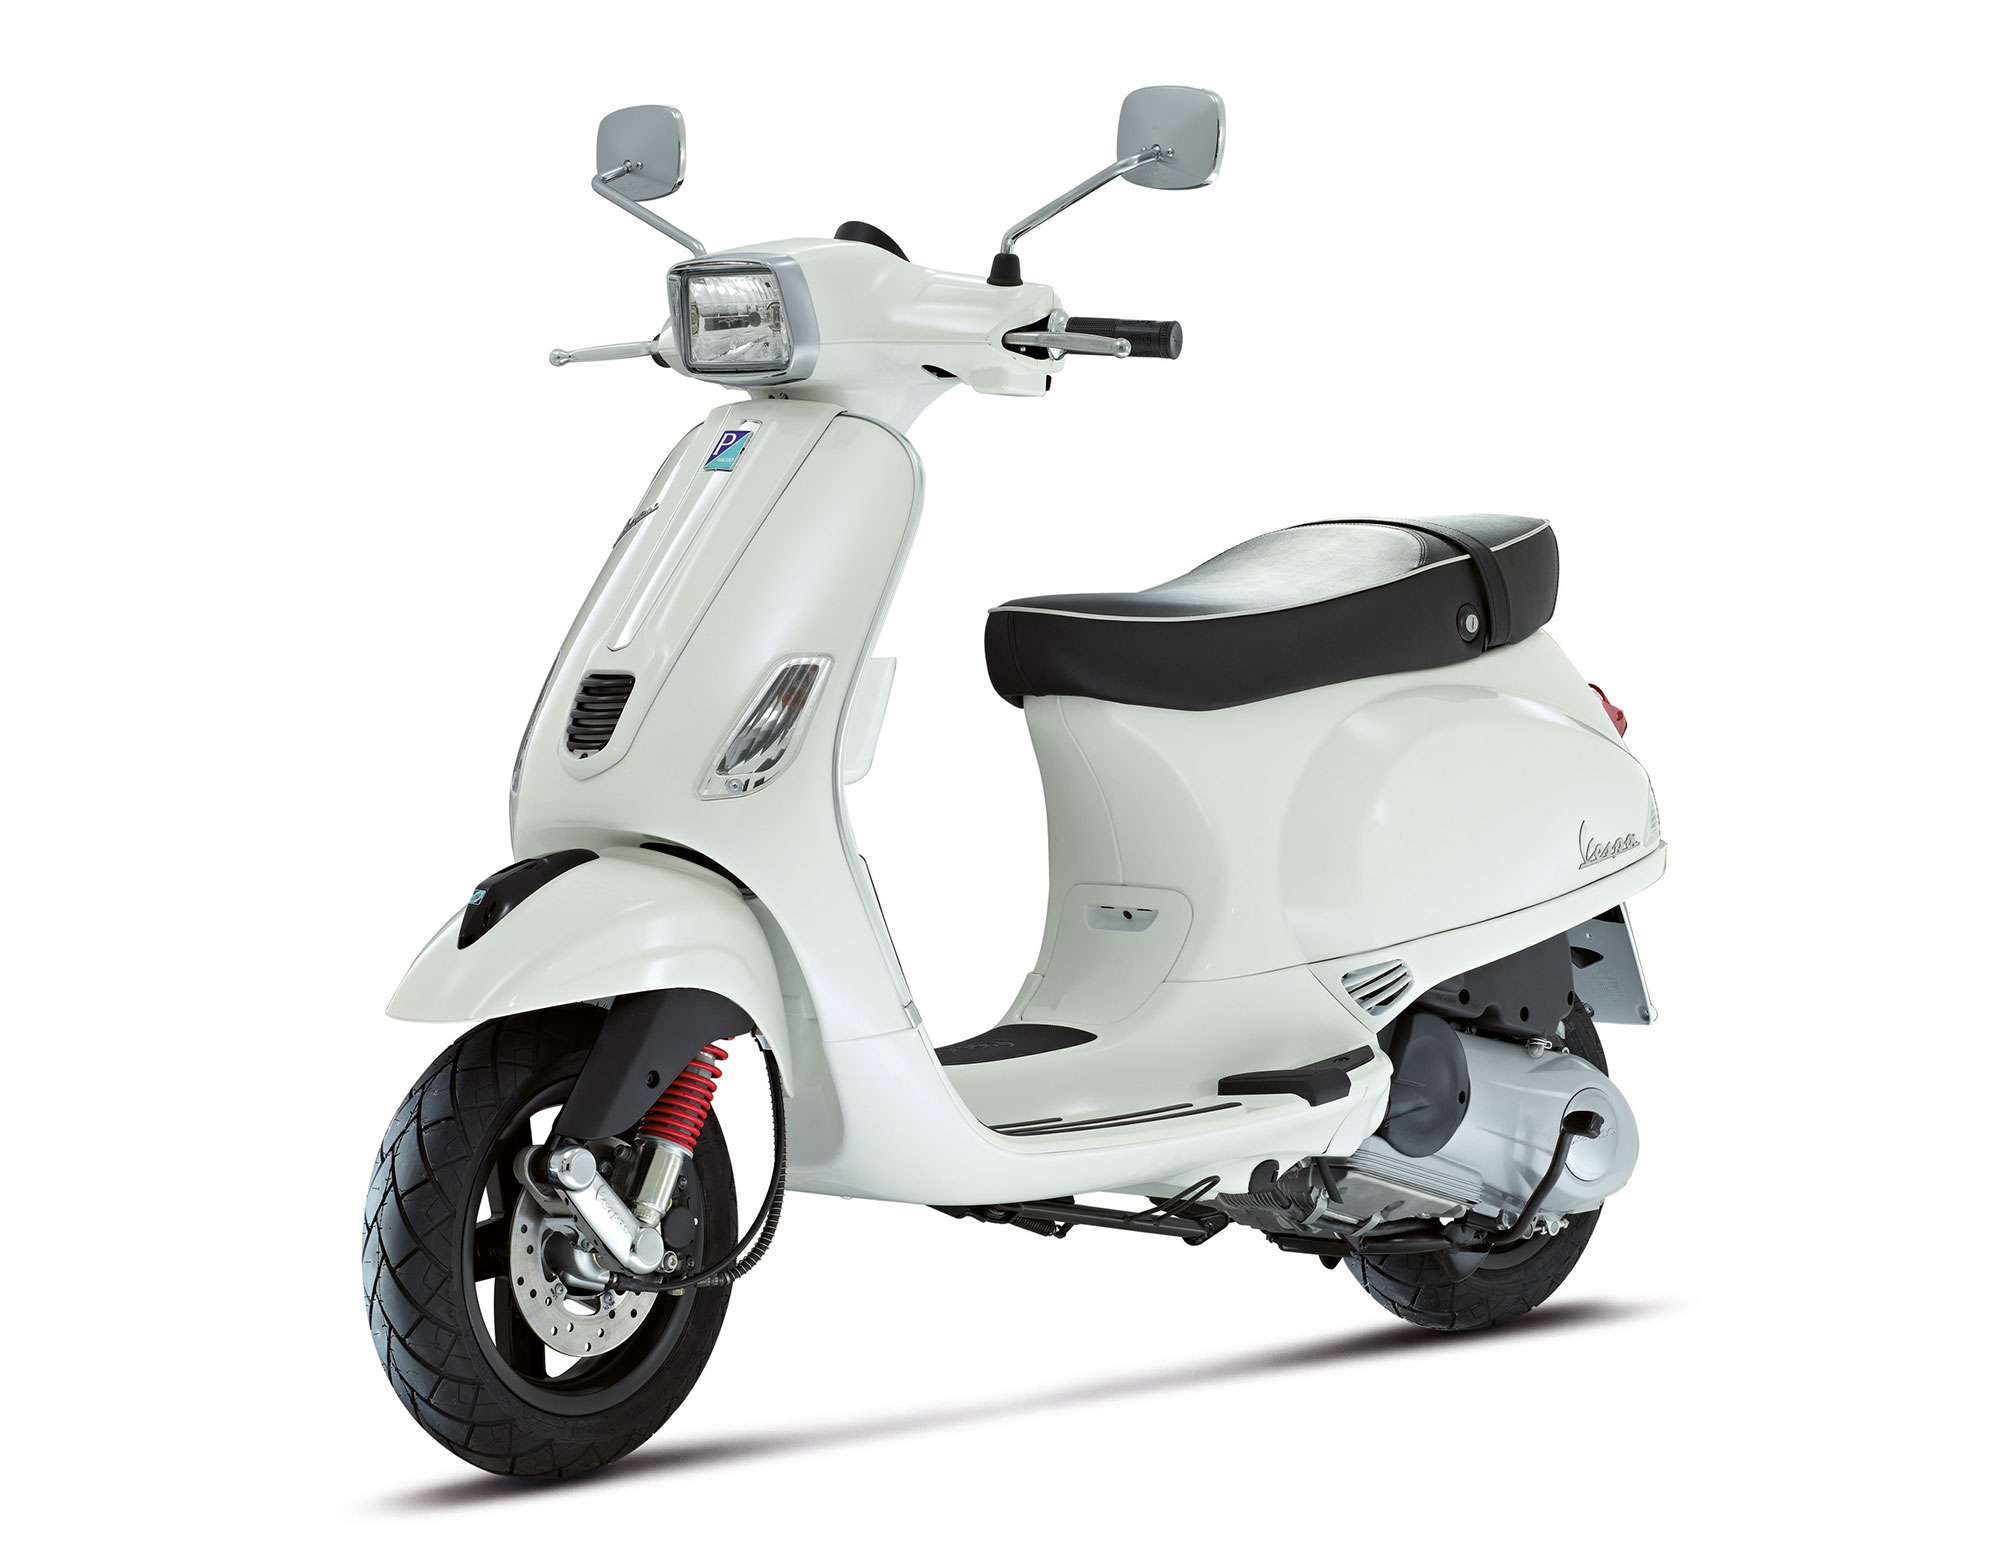 2013 Vespa S50 Scooter Review